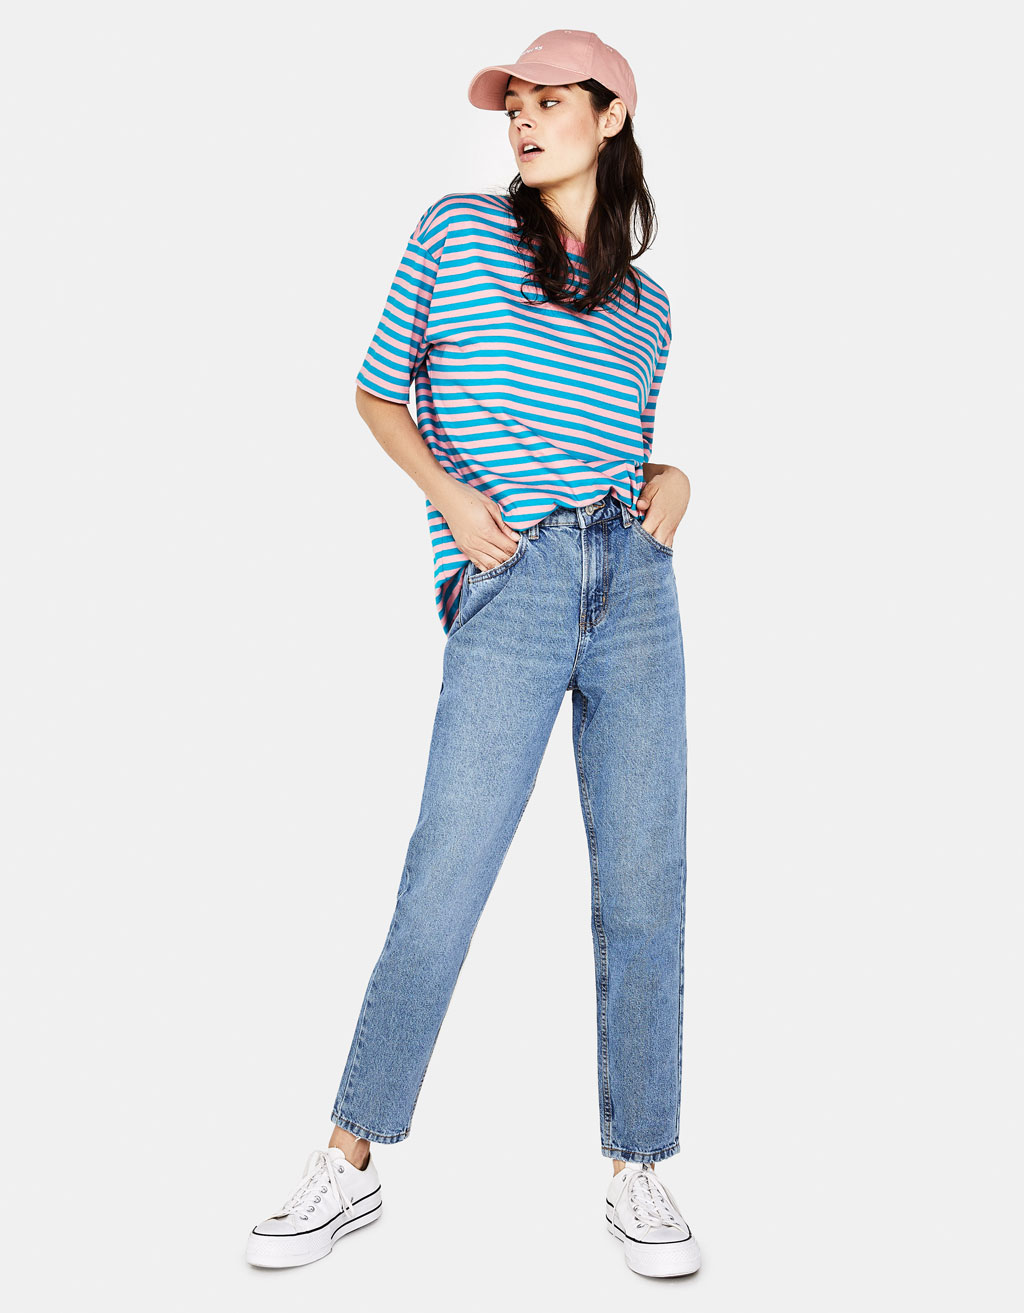 Bershka - High Waist Mom Jeans $29.90